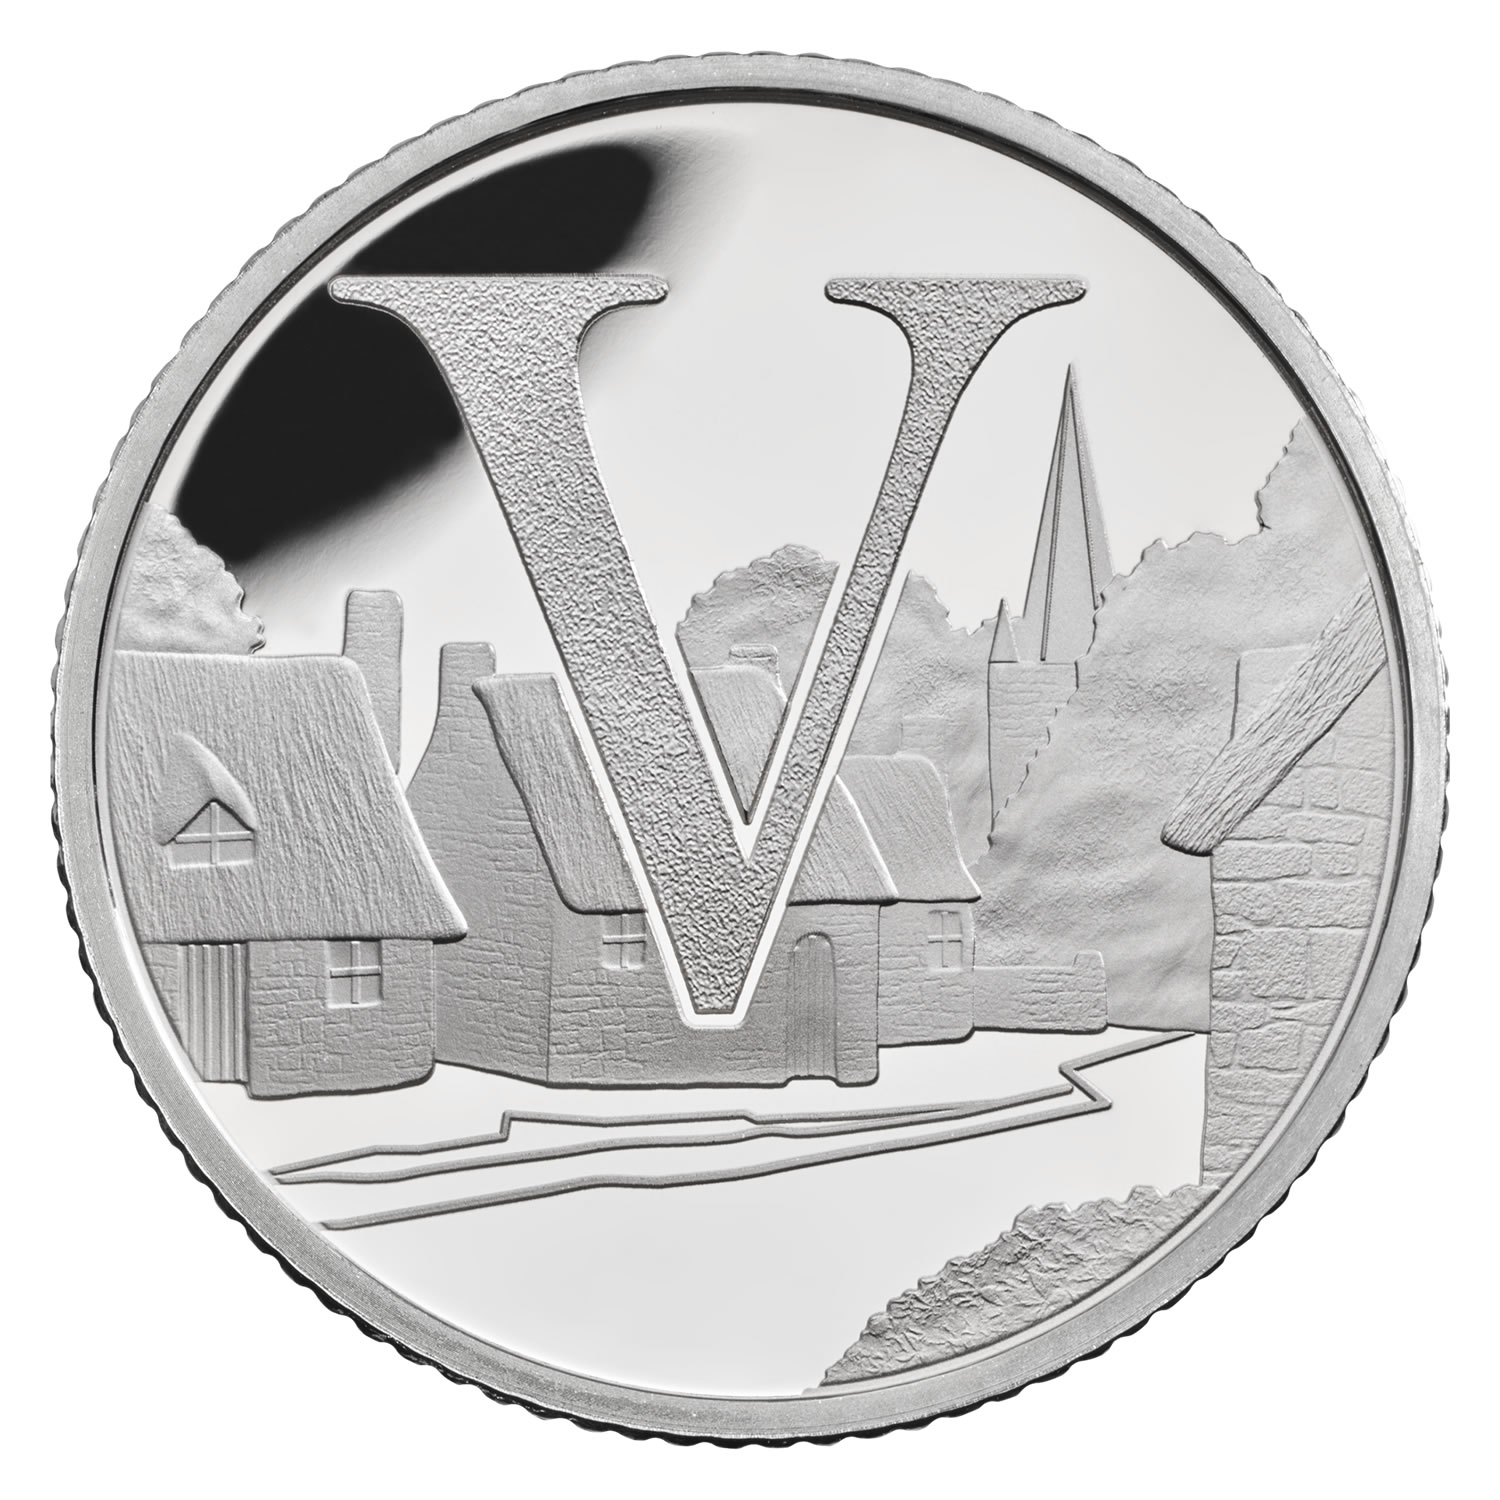 V - Villages 2018 UK 10p Silver Proof Coin